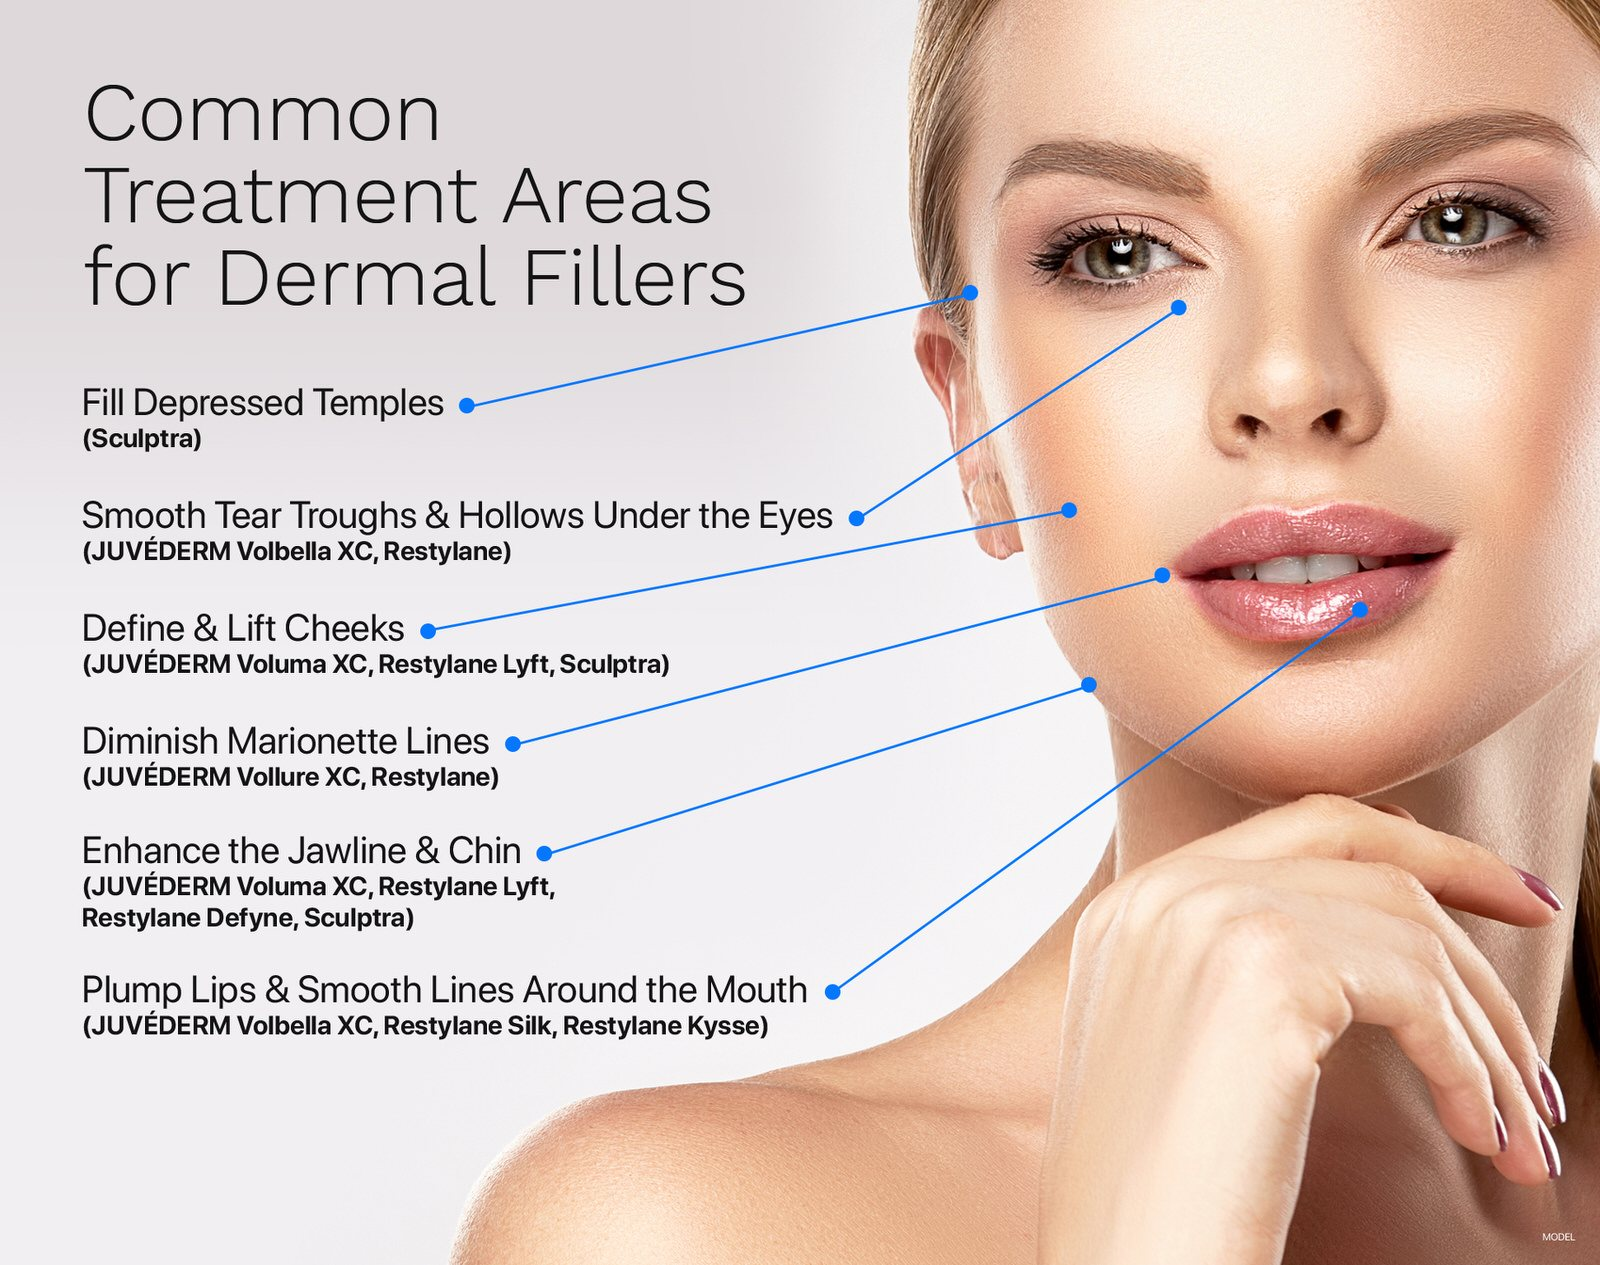 Treatment areas using dermal fillers for depressed temples, smoothing tear troughs, lift cheeks, diminish marionette lines, enhance jaw and chin, and plump lips